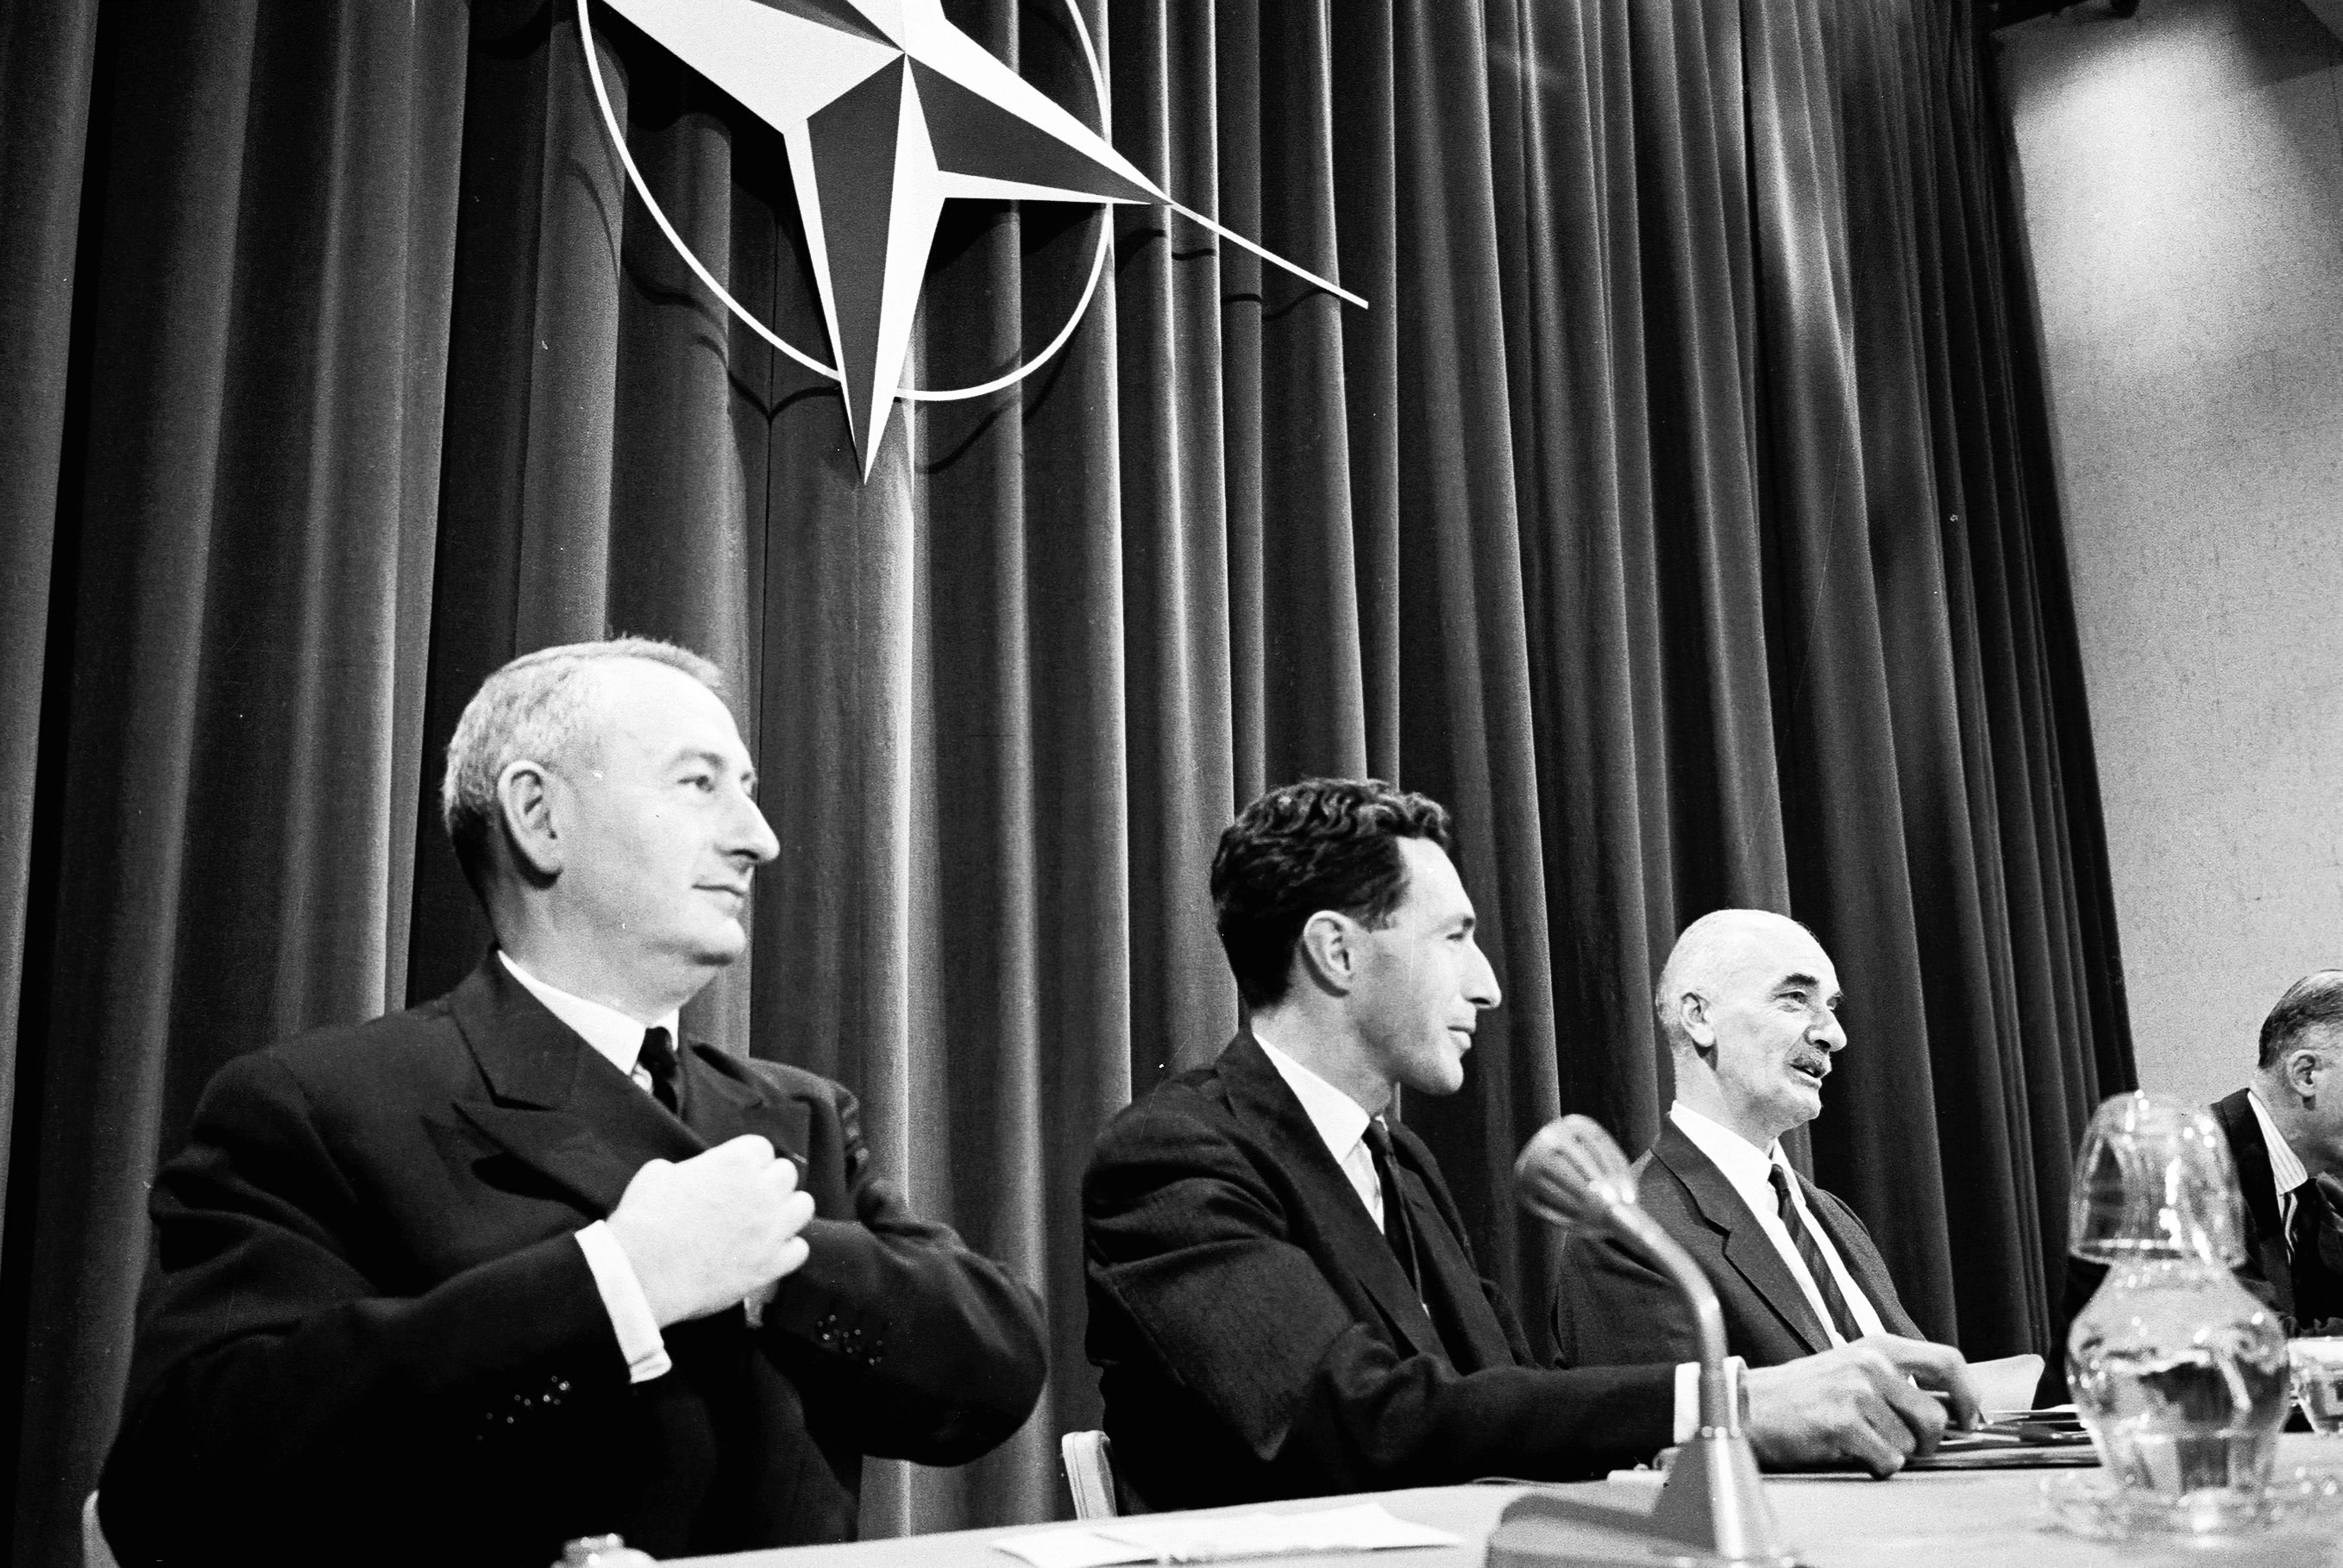 Georges Pâques (left), seen here at a press briefing with Deputy Secretary General Colonnia Di Paliano.